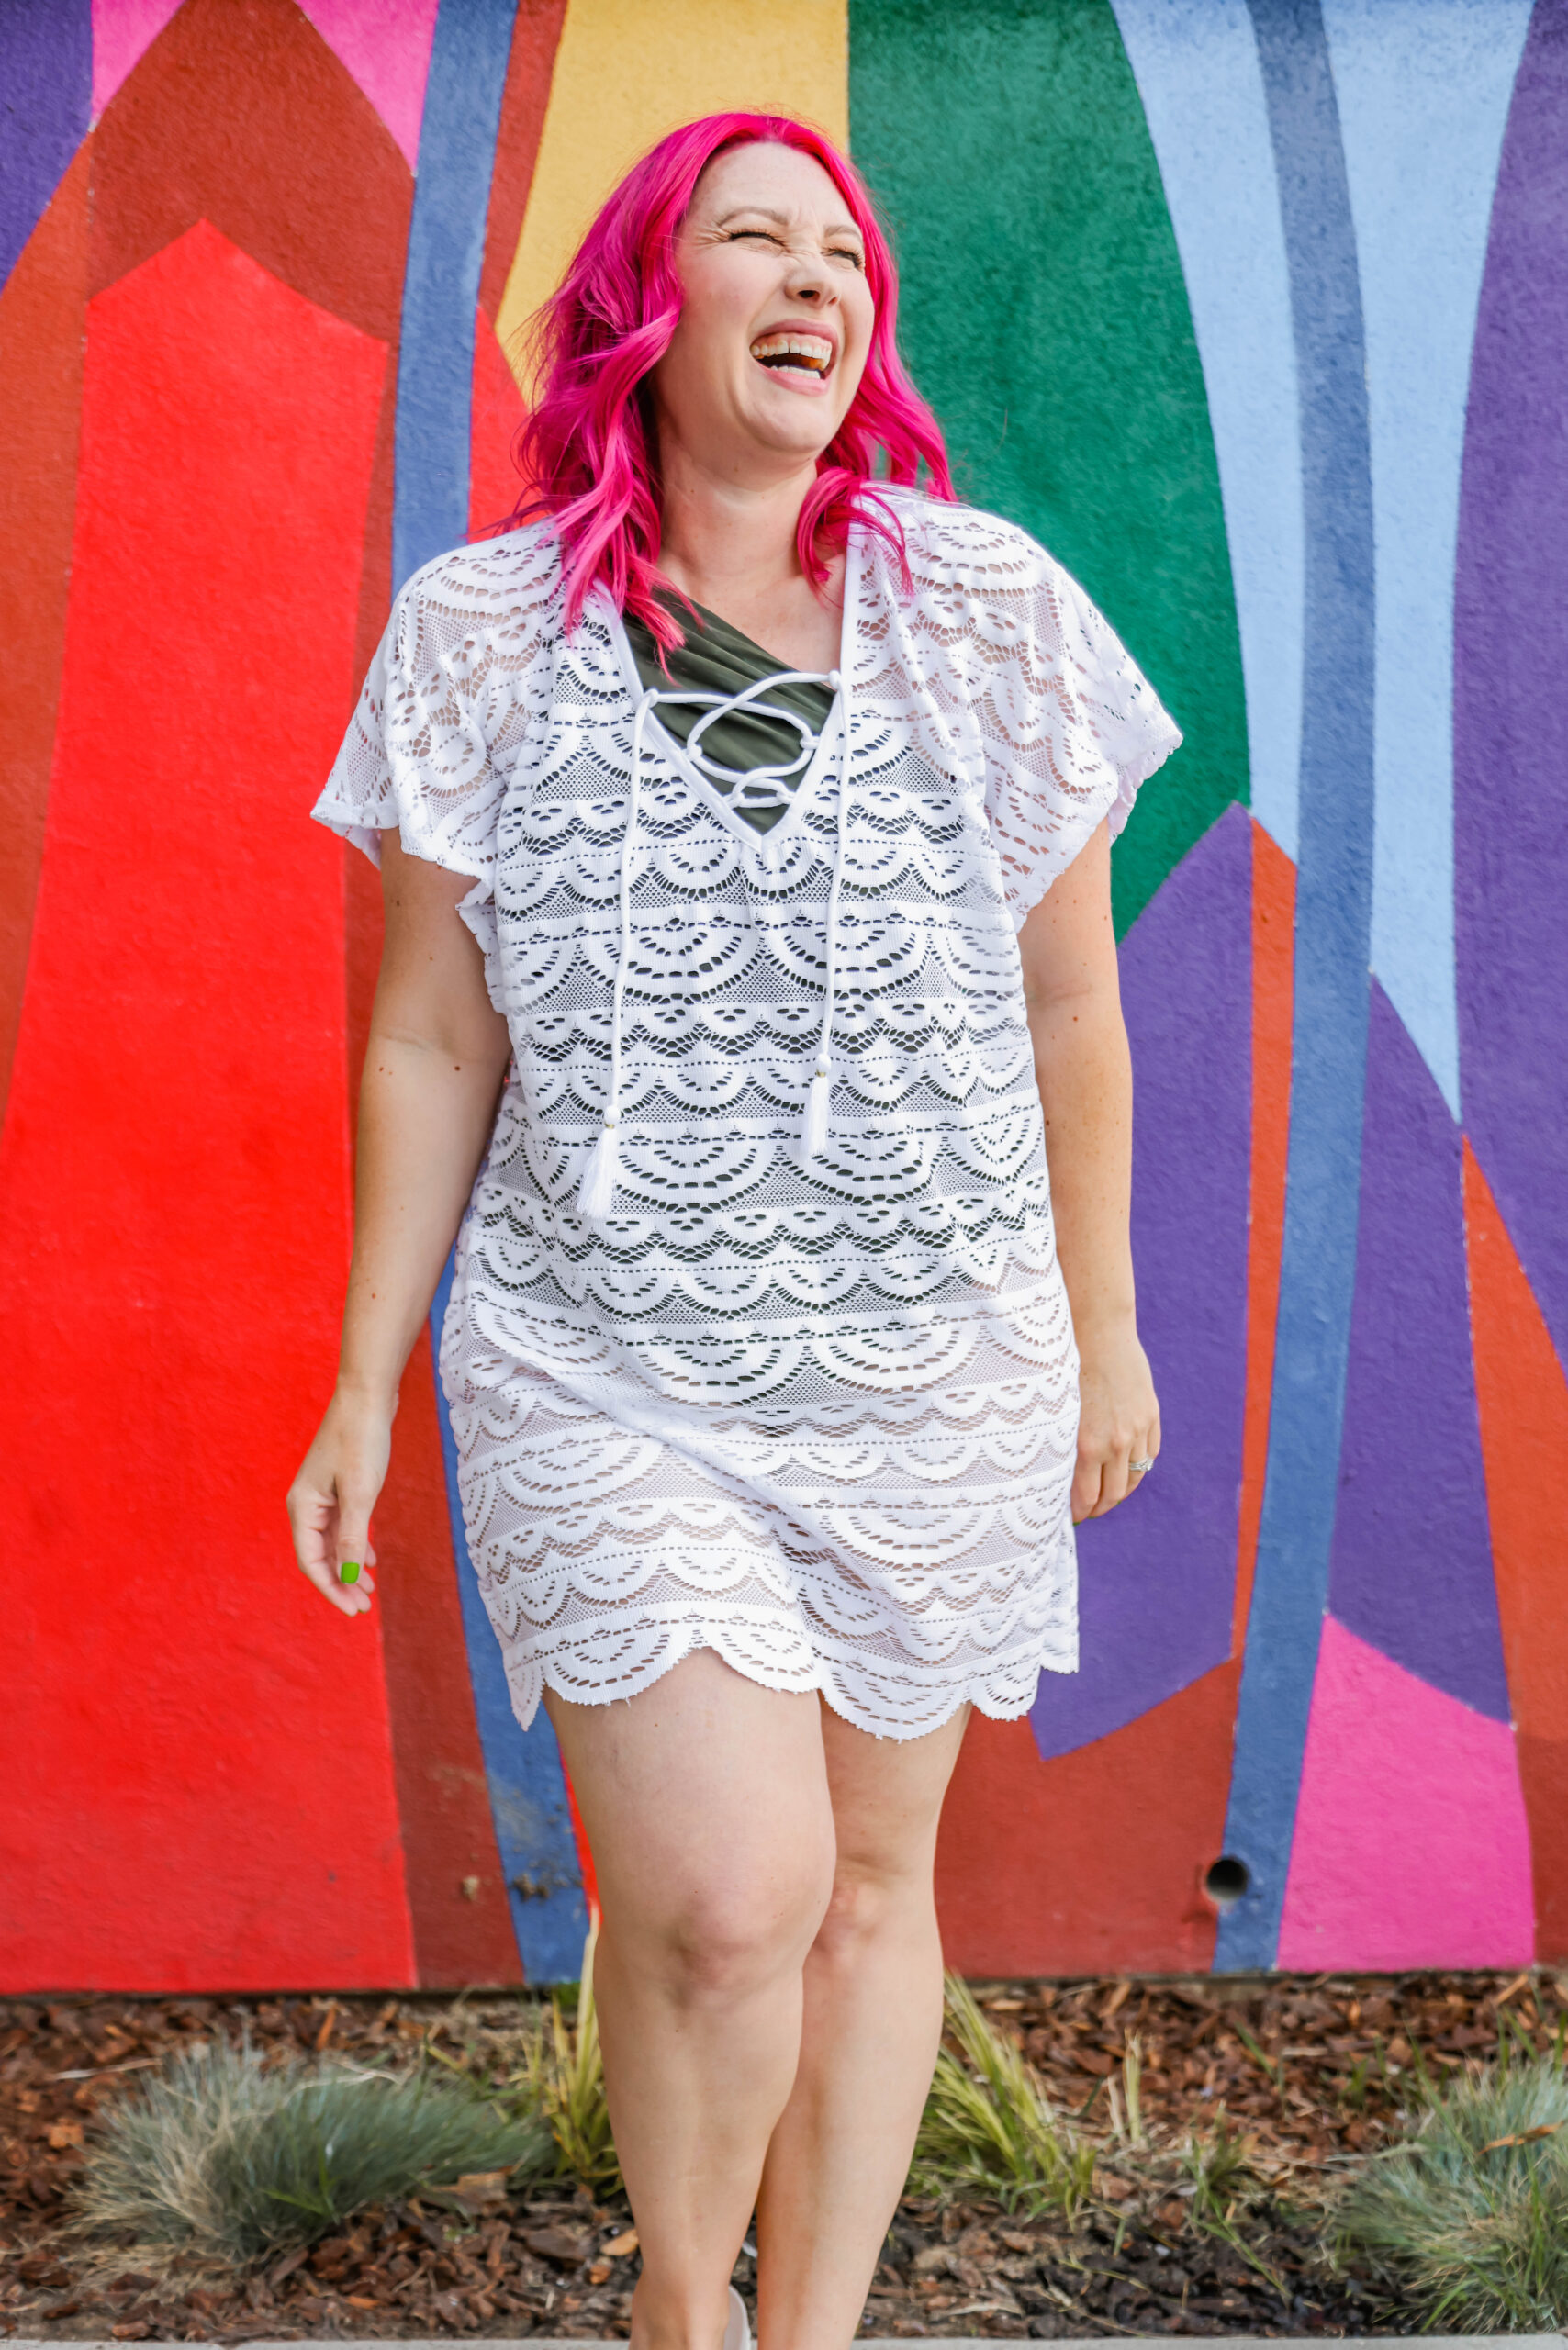 On the hunt for cute coverups? This lace cover up is under $30!